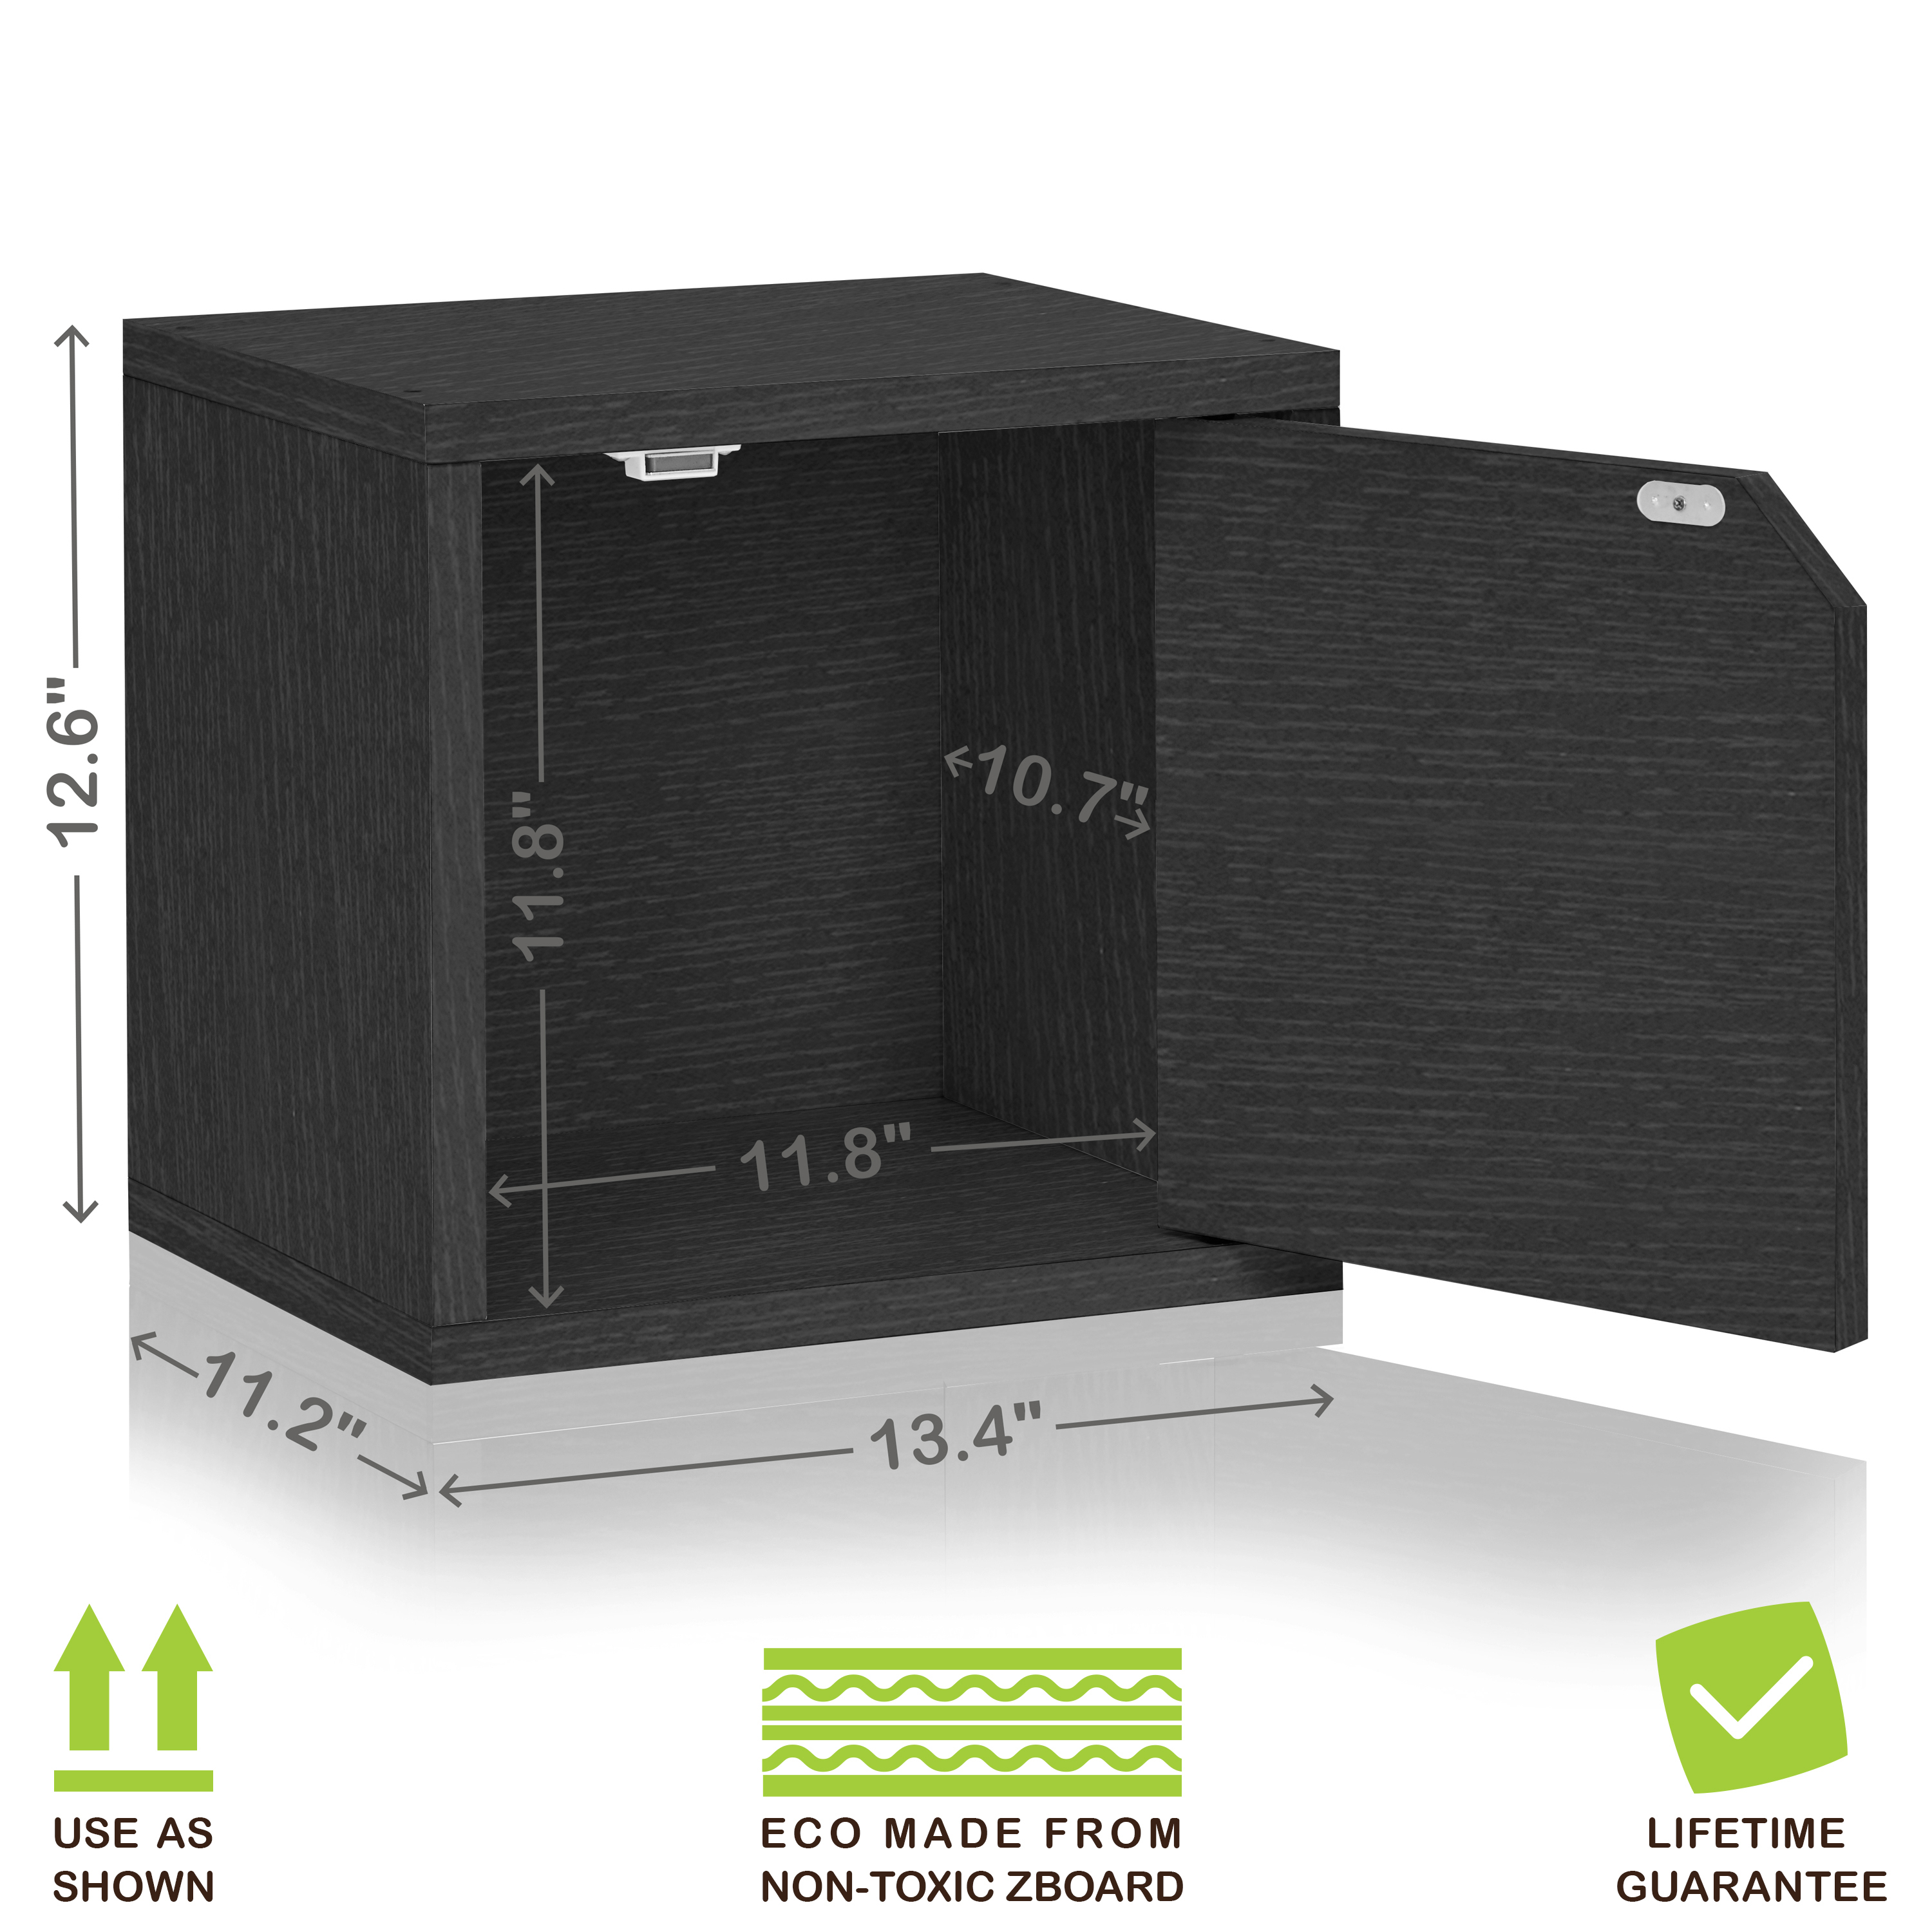 Eco Stackable Connect Storage Cube with Door Black Wood Grain - Tool Free Assembly - LIFETIME WARRANTY  sc 1 st  NicePrice & Eco Stackable Connect Storage Cube with Door Black Wood Grain ...